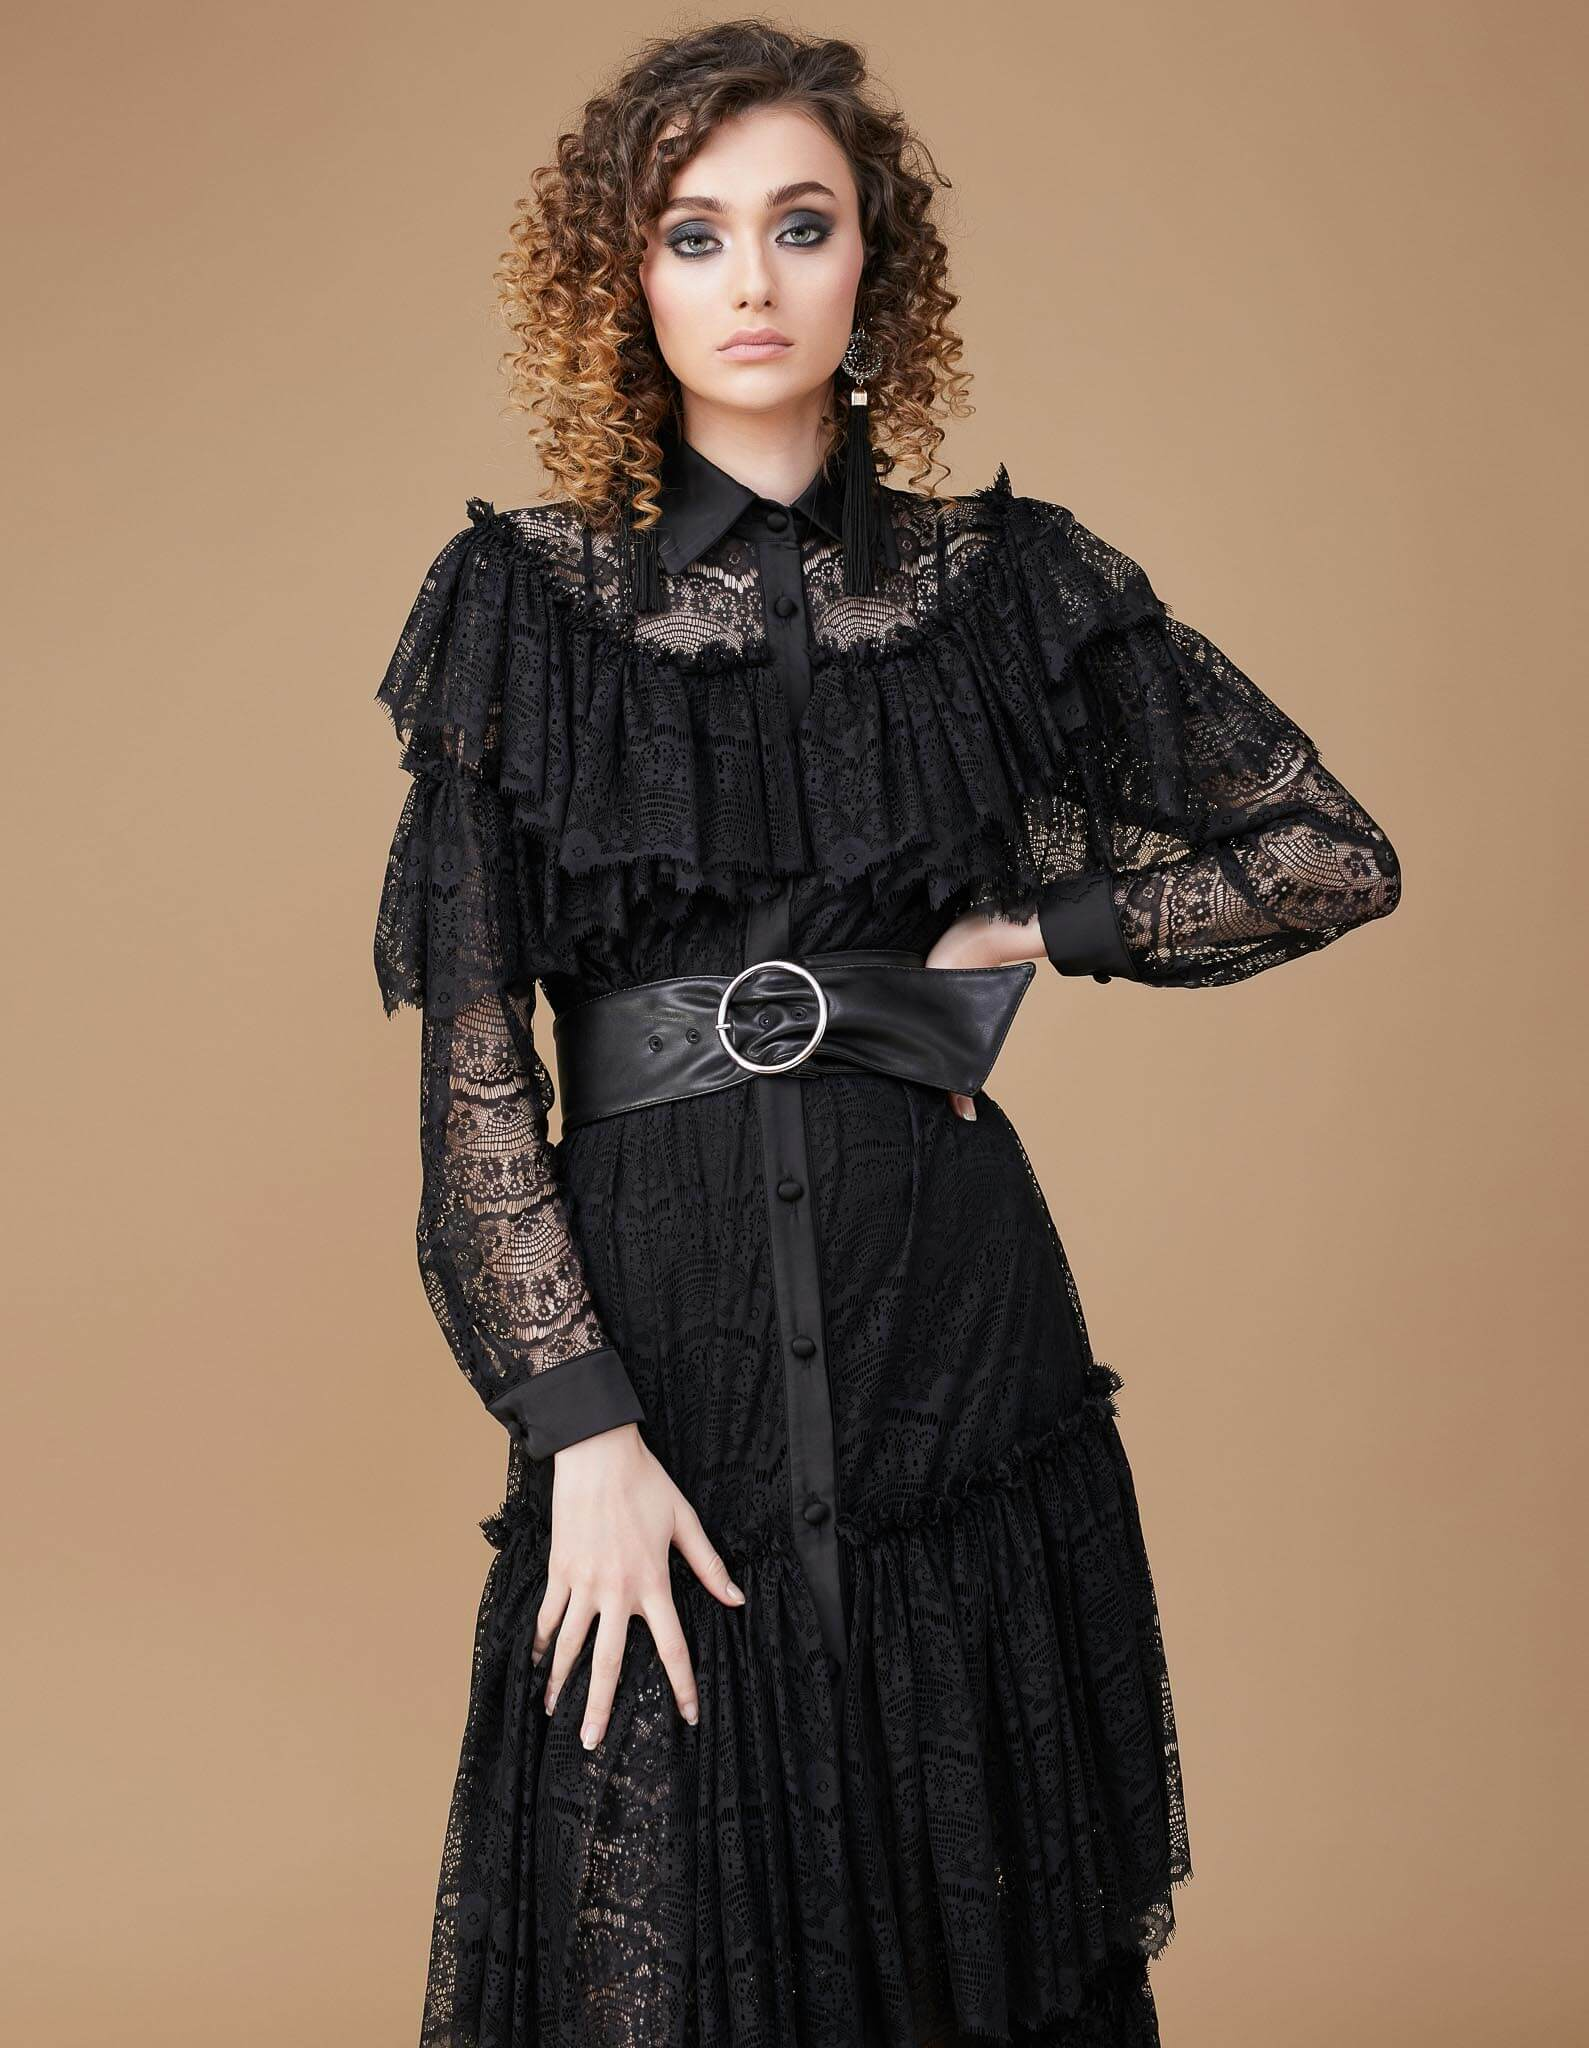 SUMMER Black Lace Long Dress